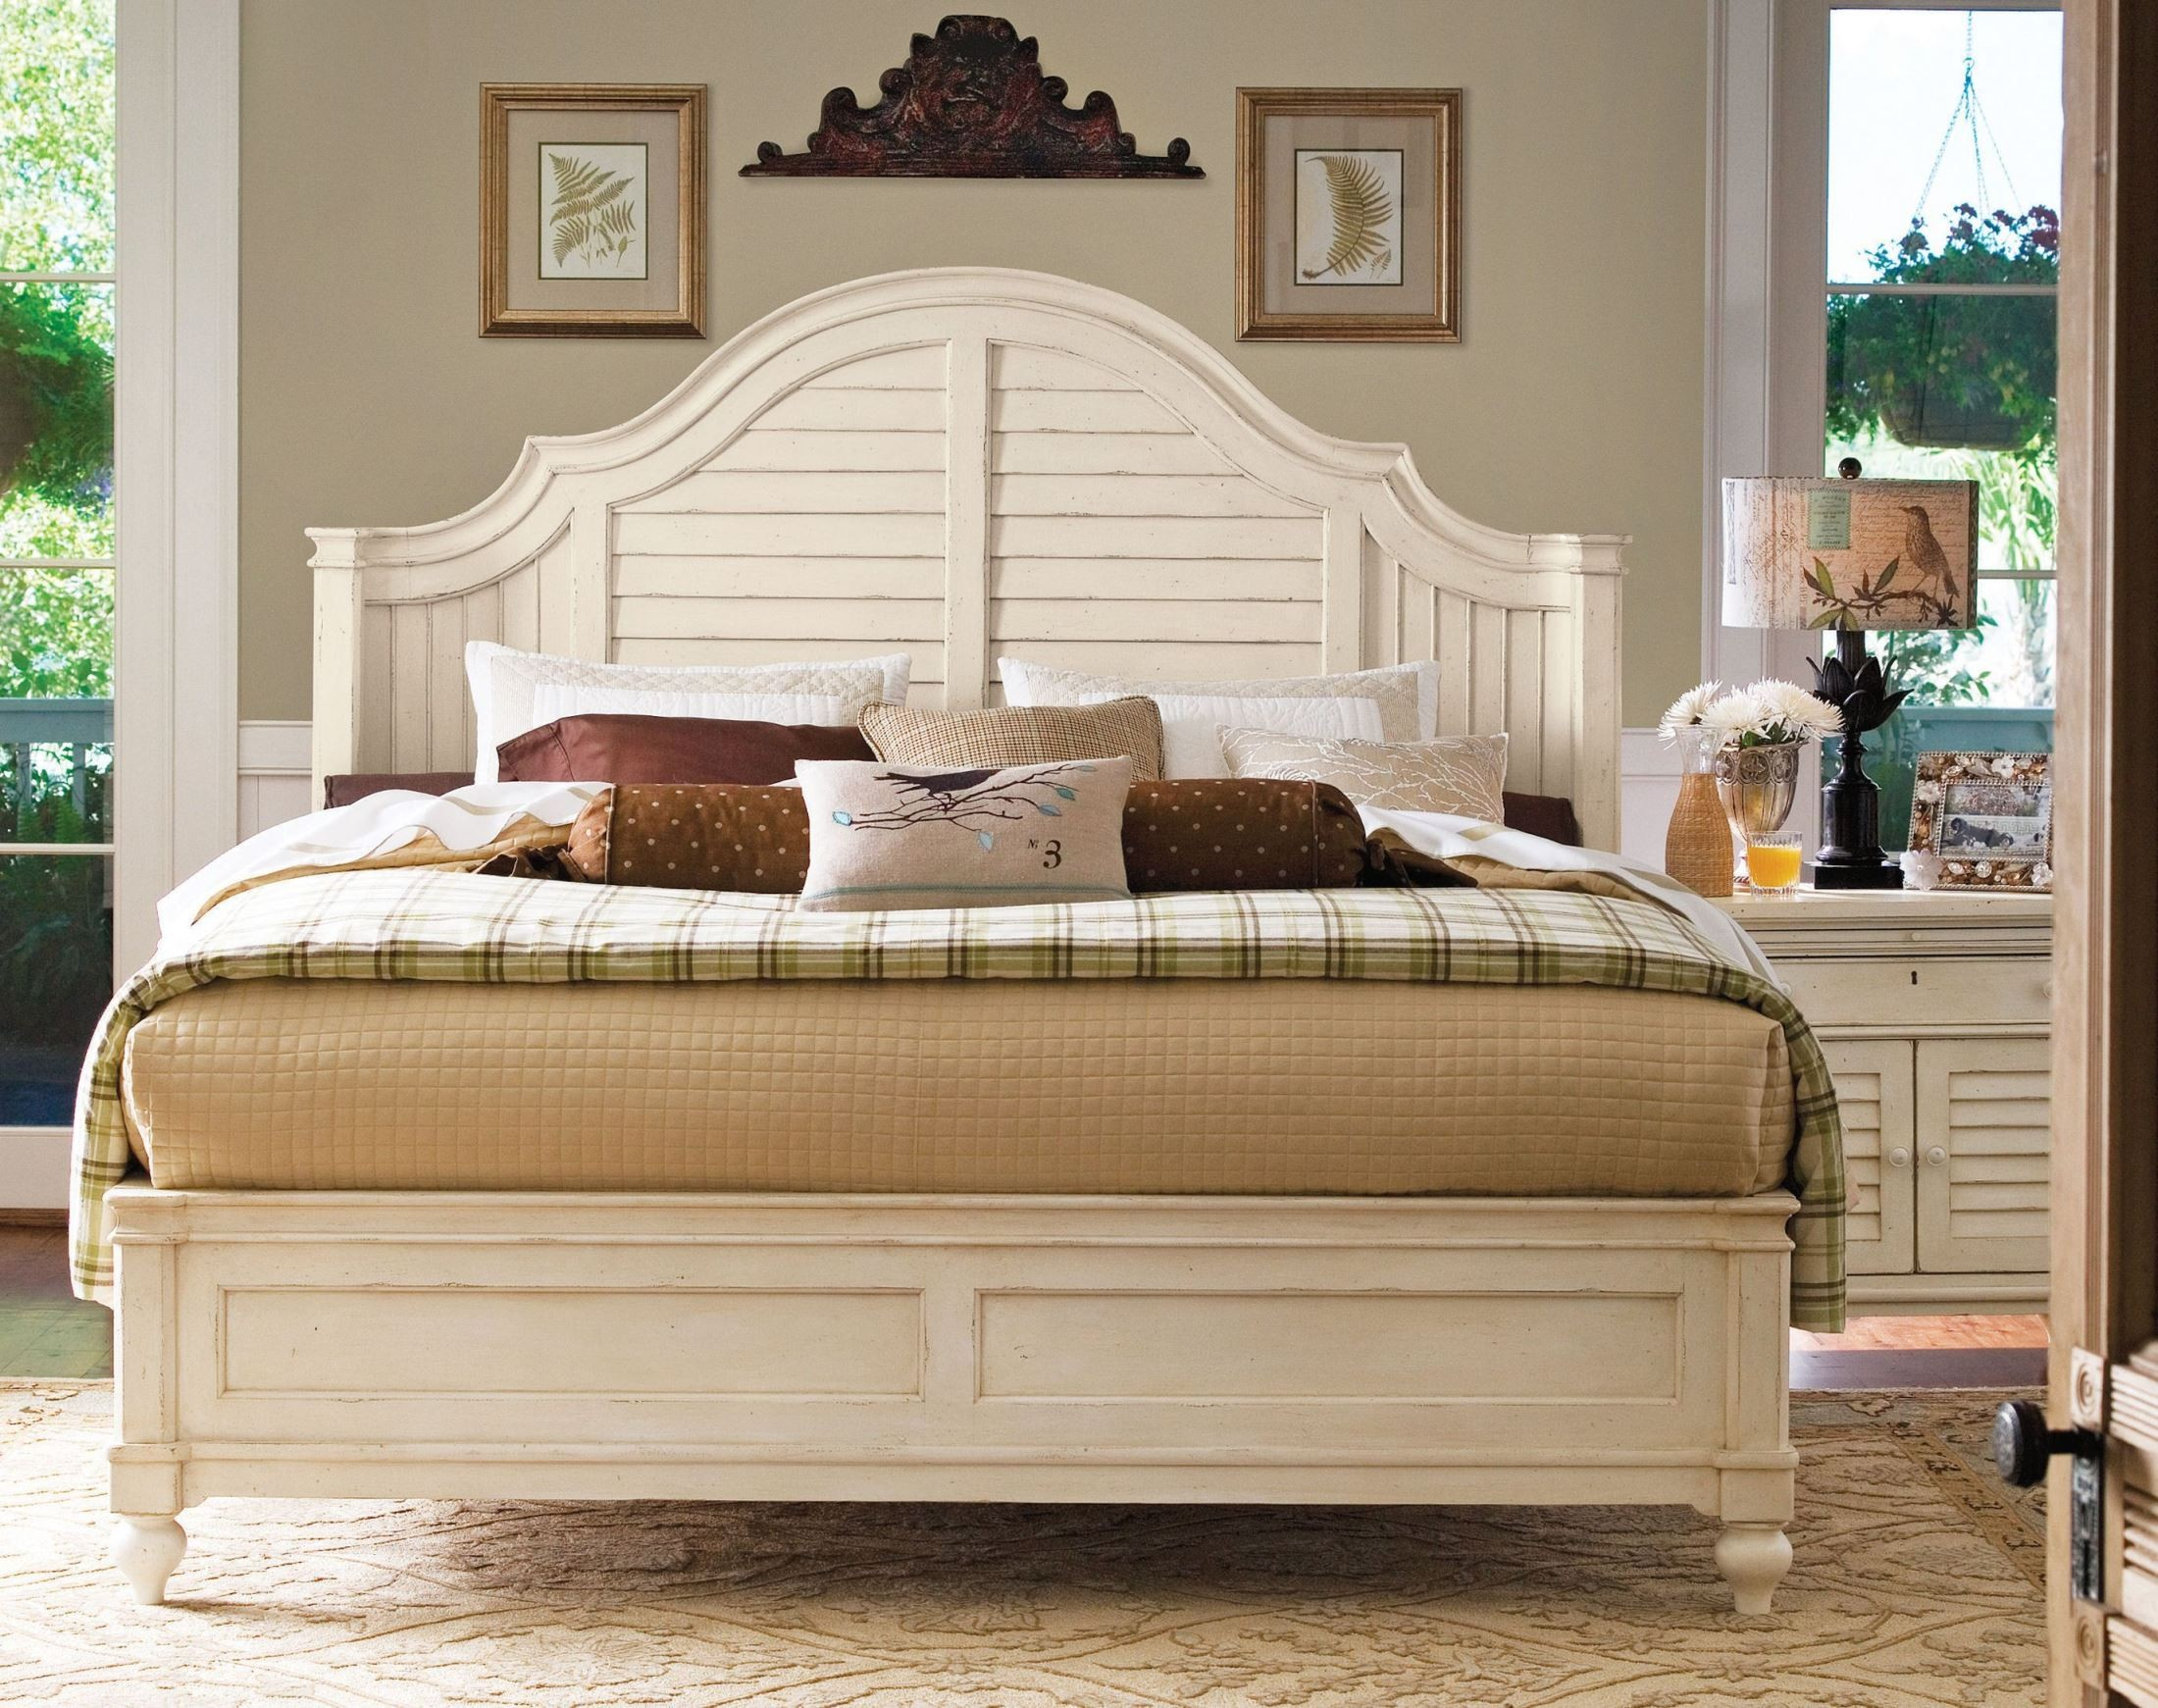 Paula Deen Home Linen Magnolia Bedroom Set From Paula Deen 996210b Coleman Furniture